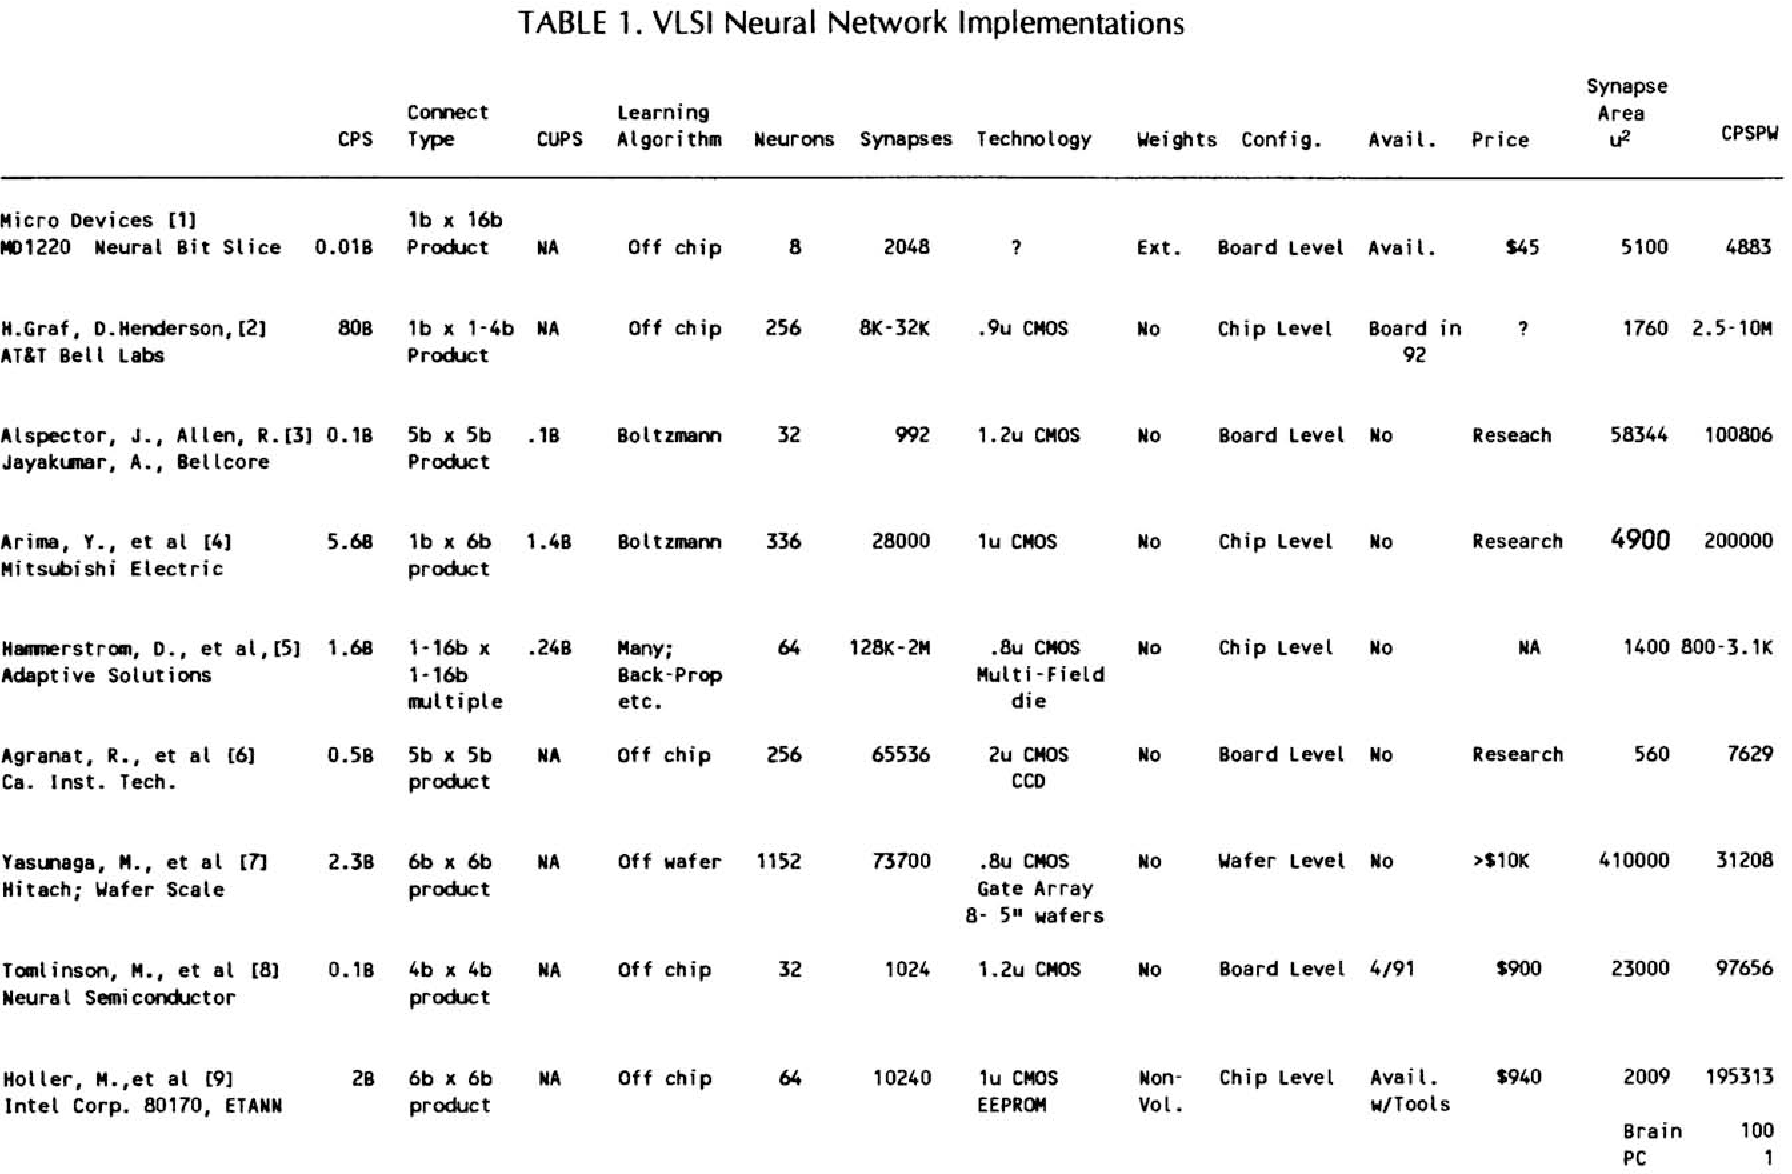 TABLE 1. VLSI Neural Network Implementations